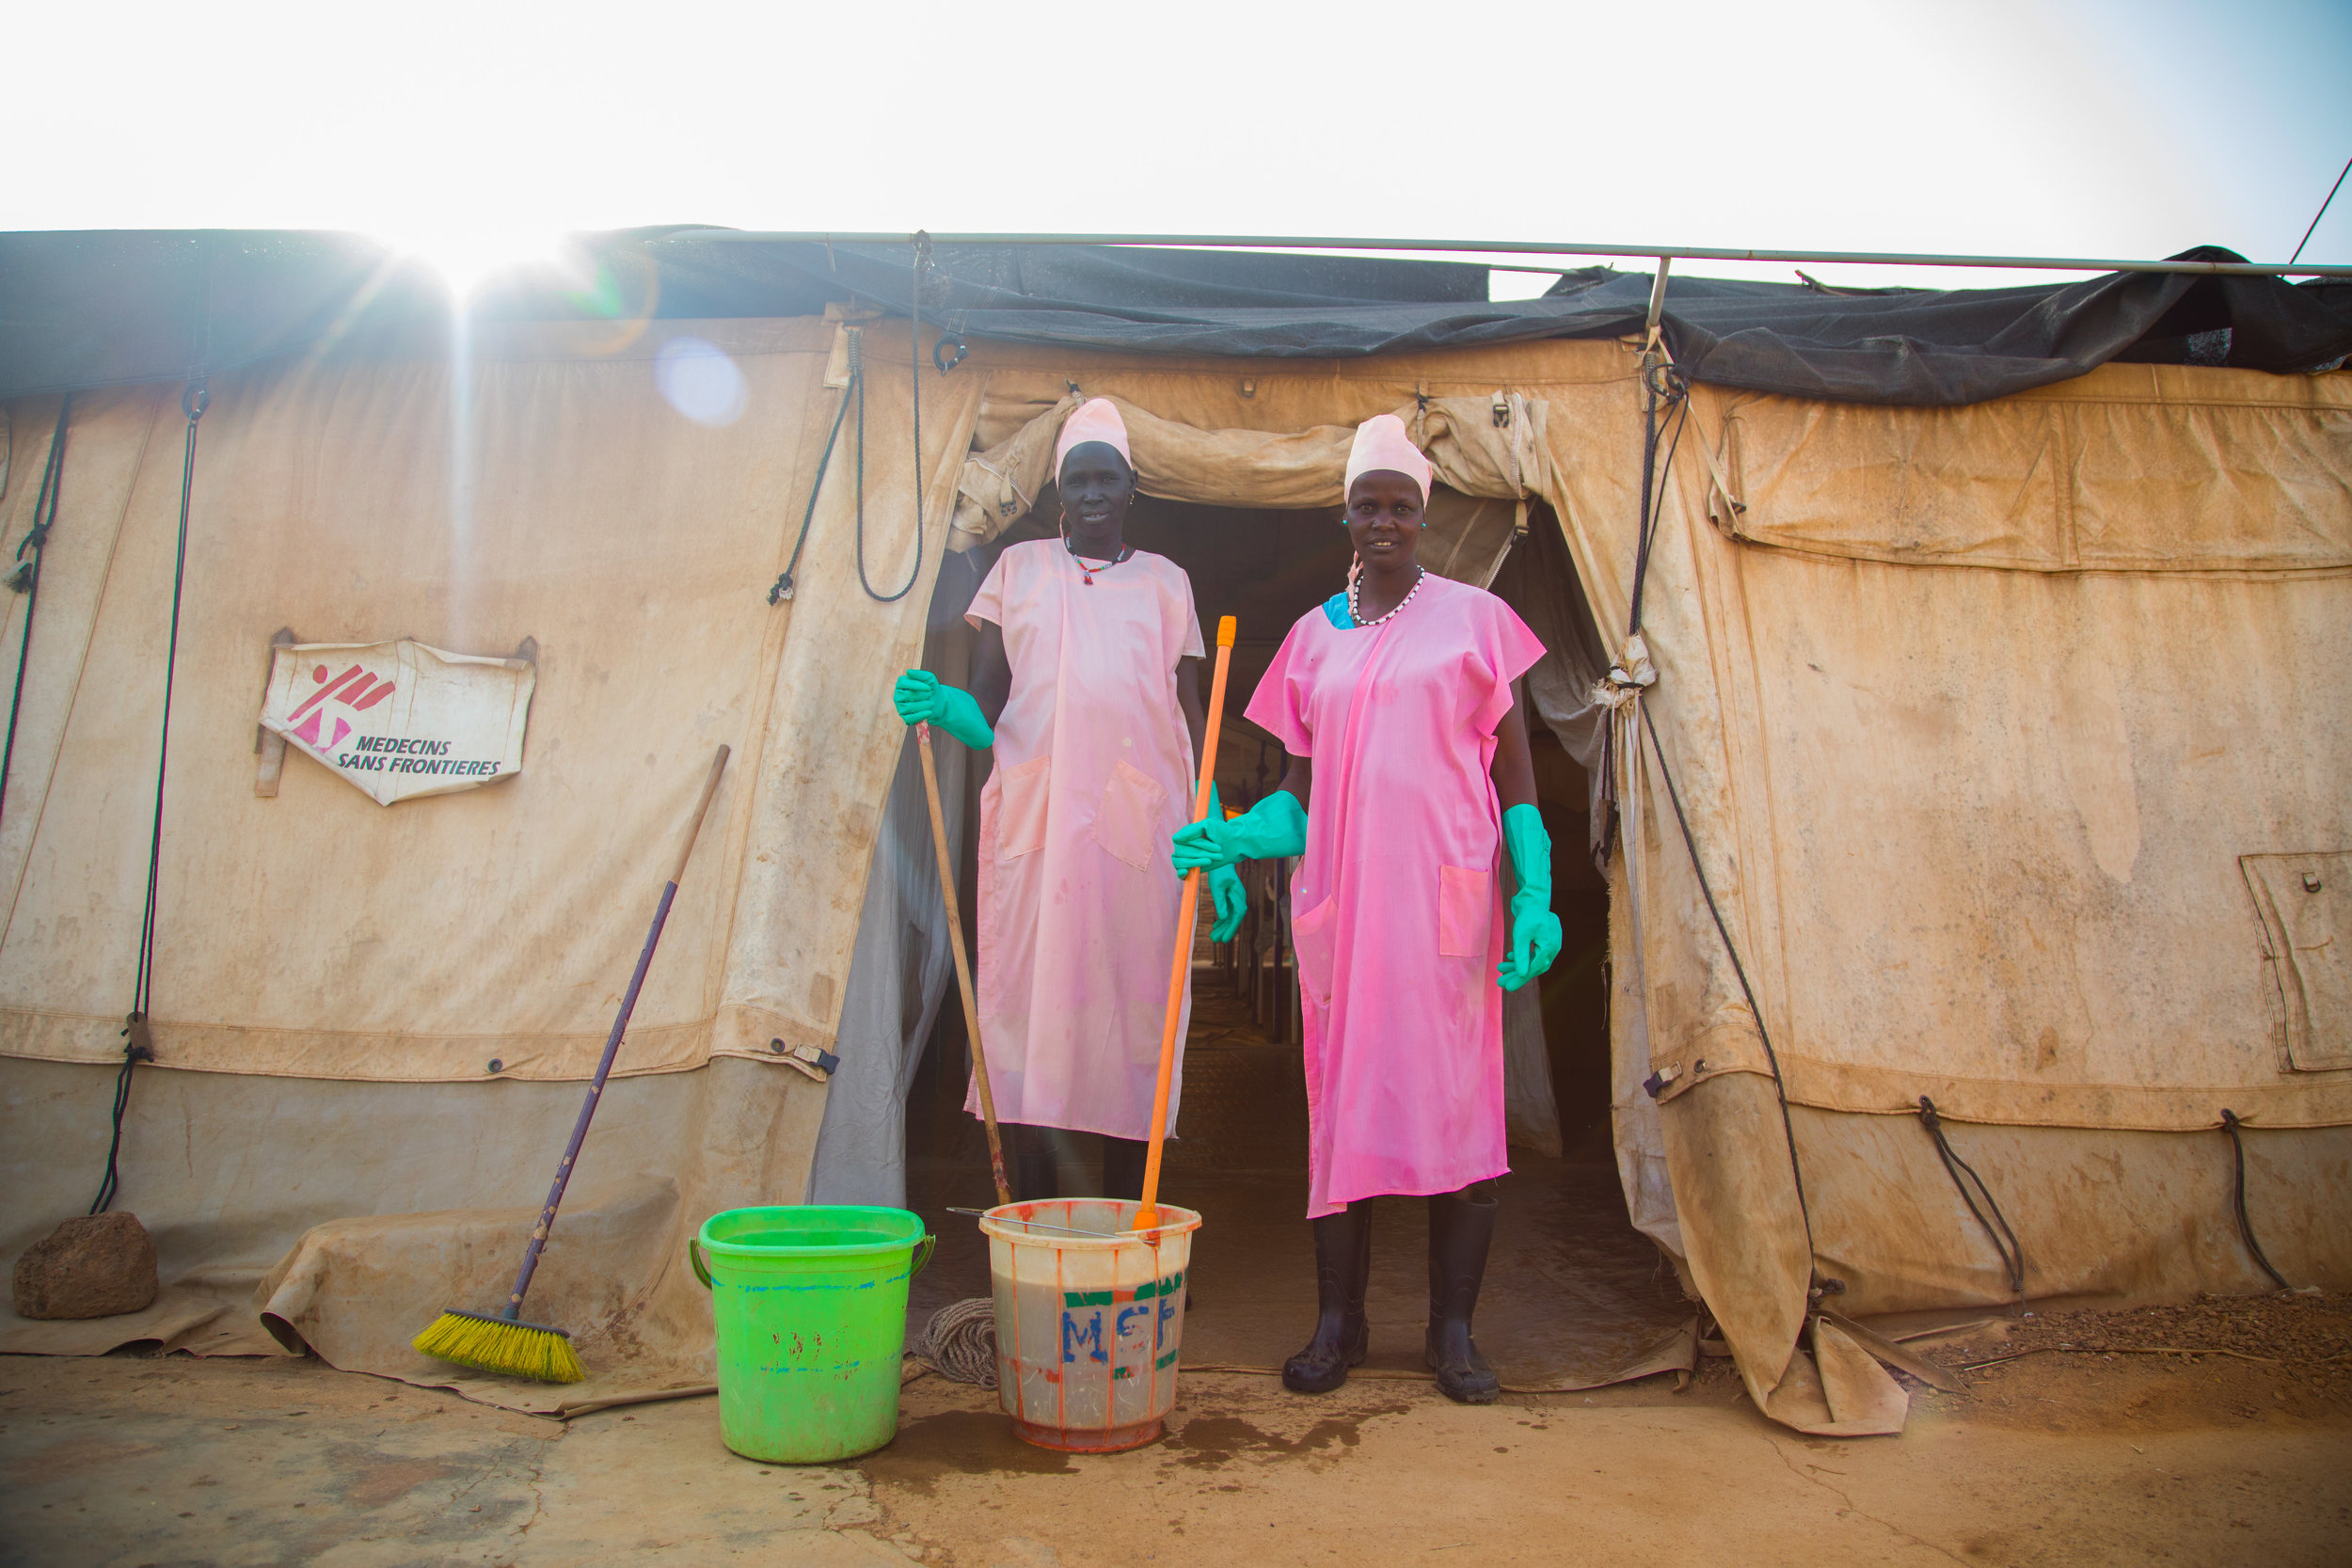 Two cleaners outside an MSF run hospital in Aweil, South Sudan